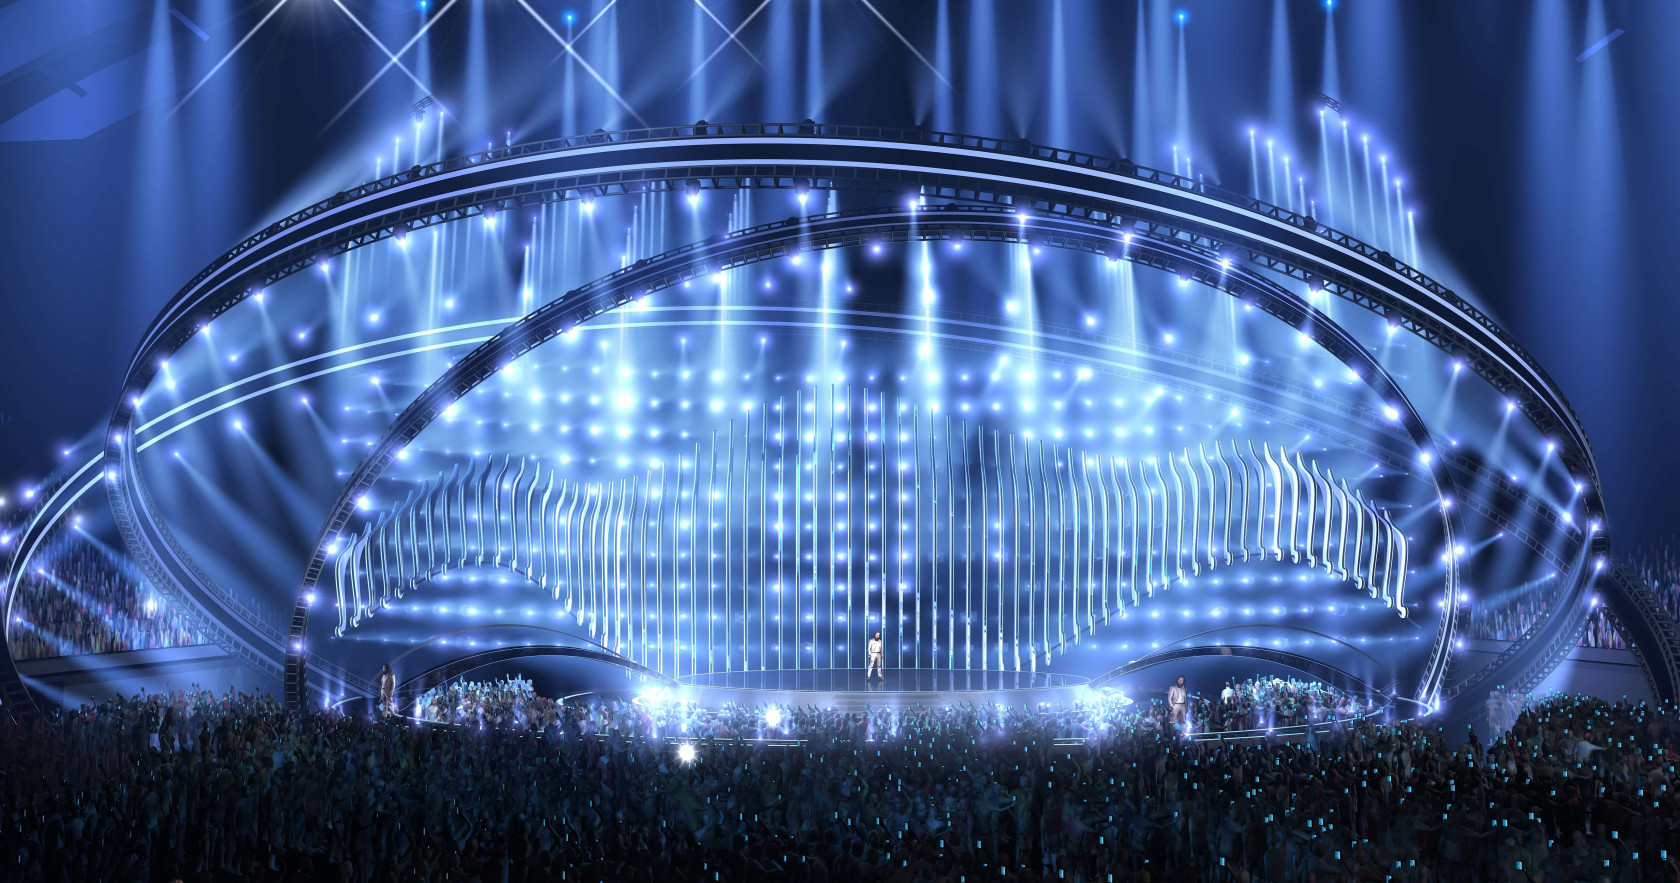 The stage of the 2018 Eurovision Song Contest